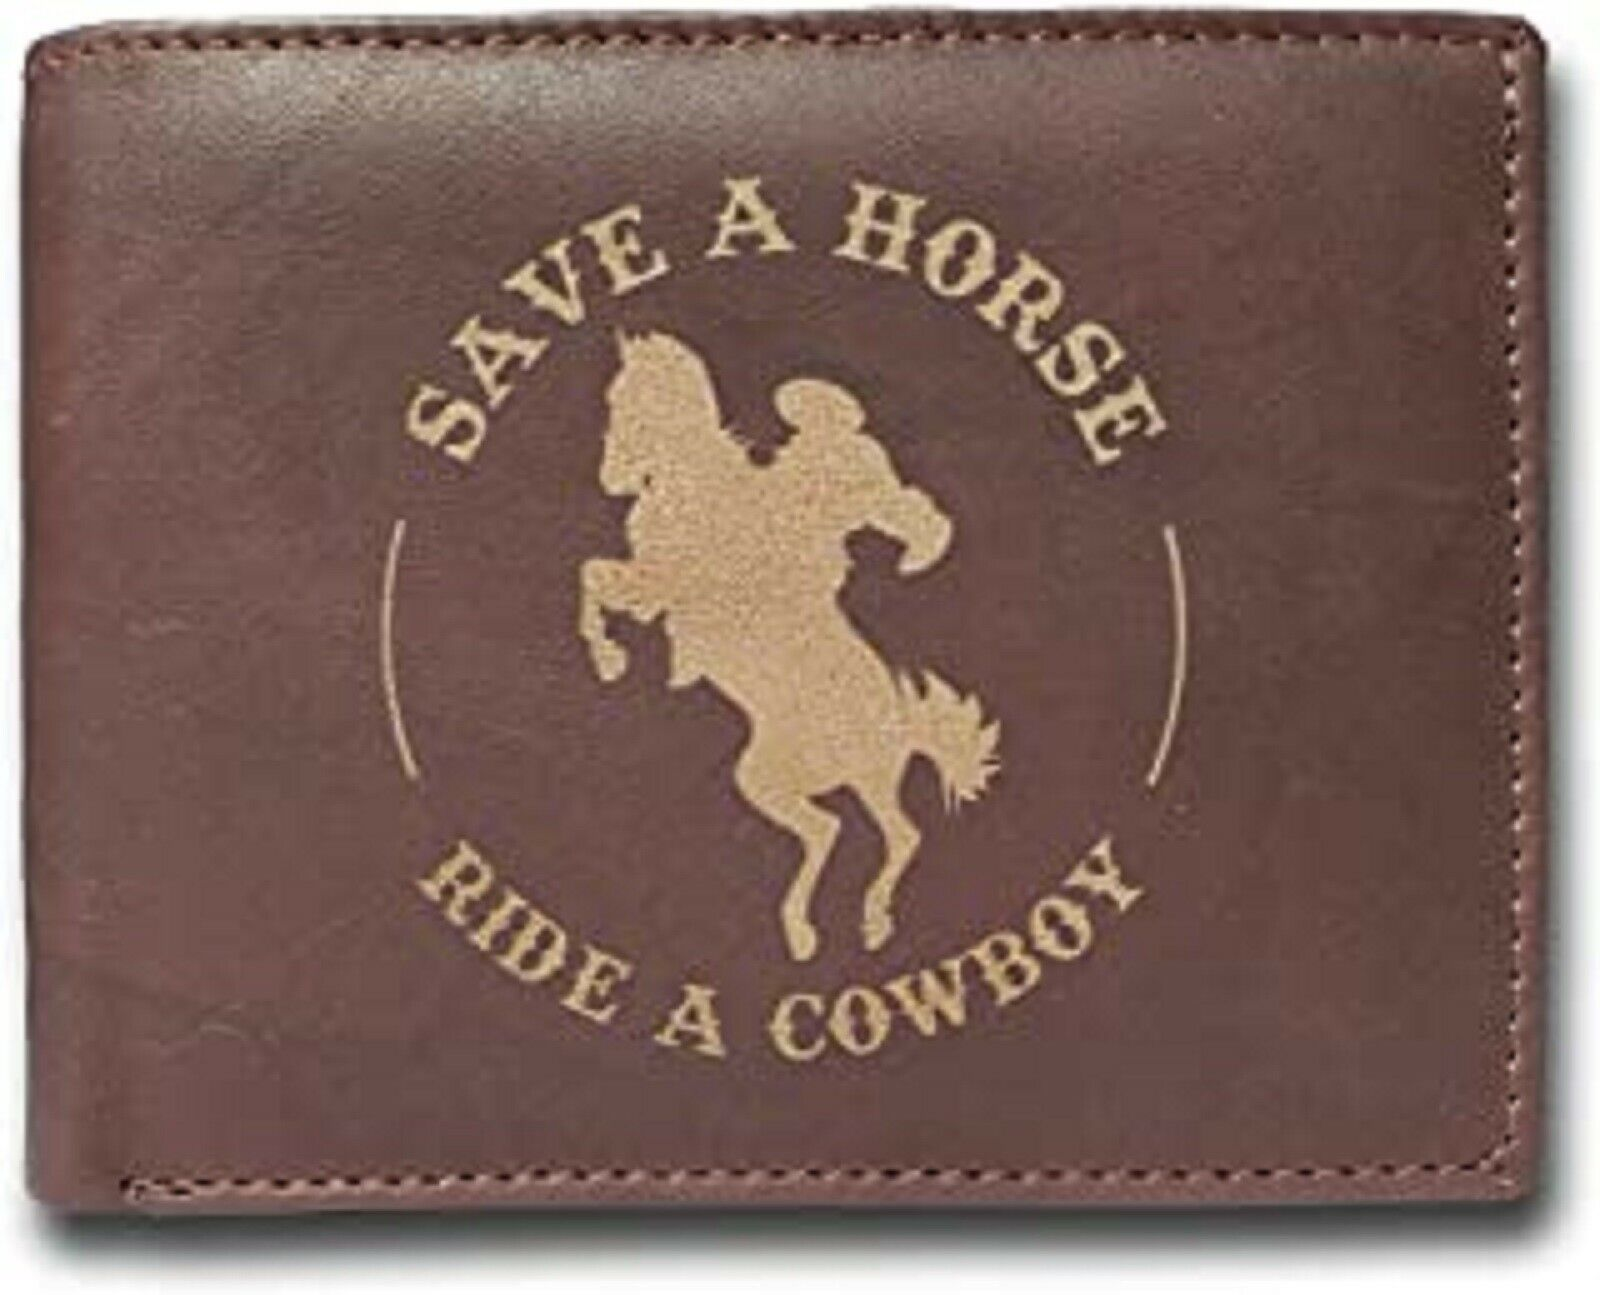 Save a Horse Ride a Cowboy Horse Riding Cowhide Leather Laser Engraved Engraving